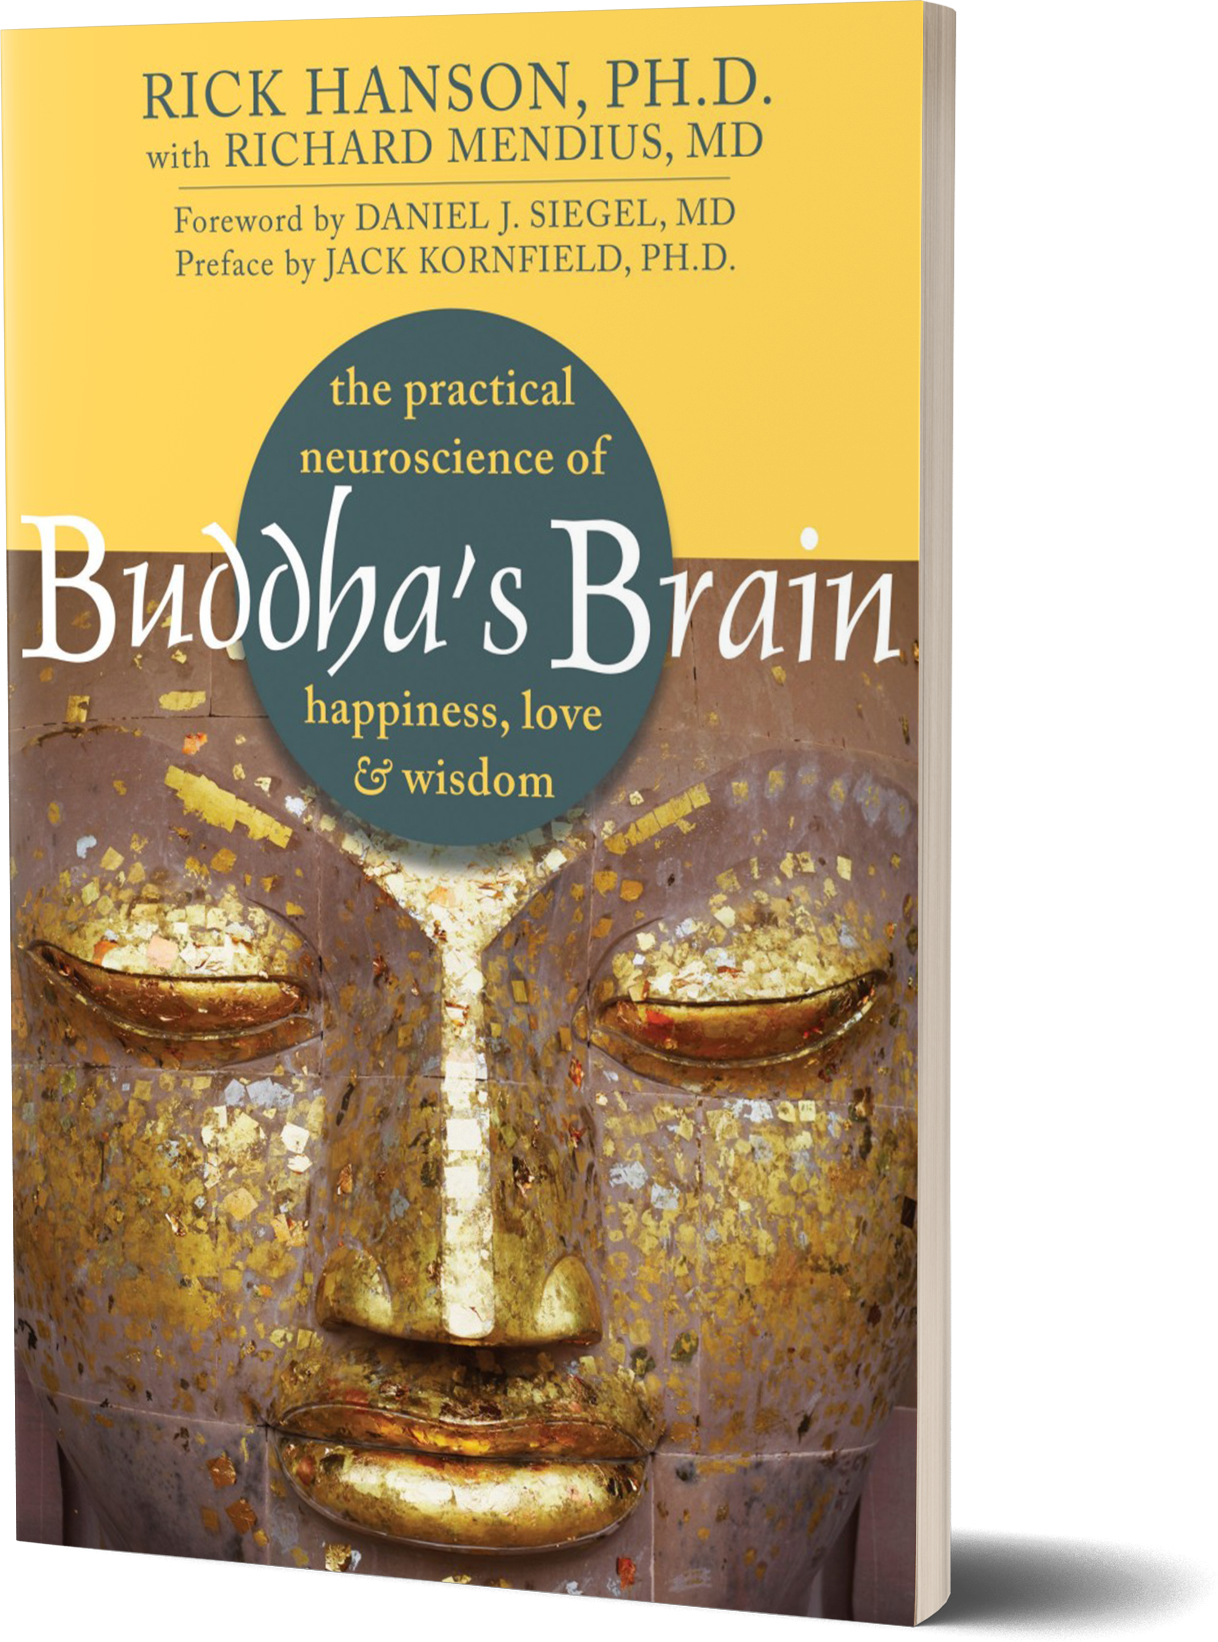 Buddha's Brain- The Practical Neuroscience of Happiness, Love and Wisdom by Rick Hanson, Ph.D.png